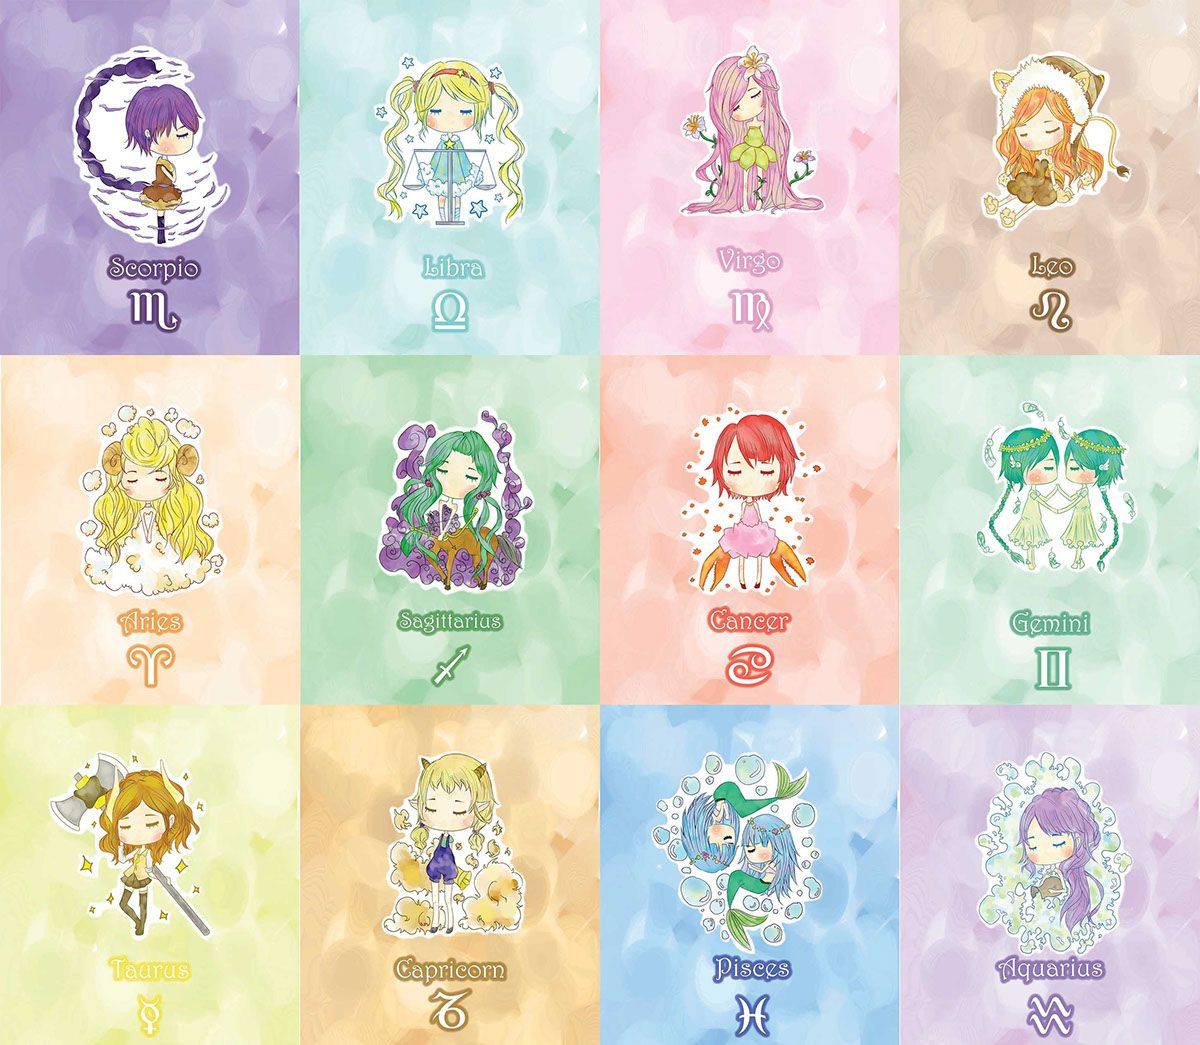 dreamy zodiac girls | the magnificent zodiac | pinterest | 星座